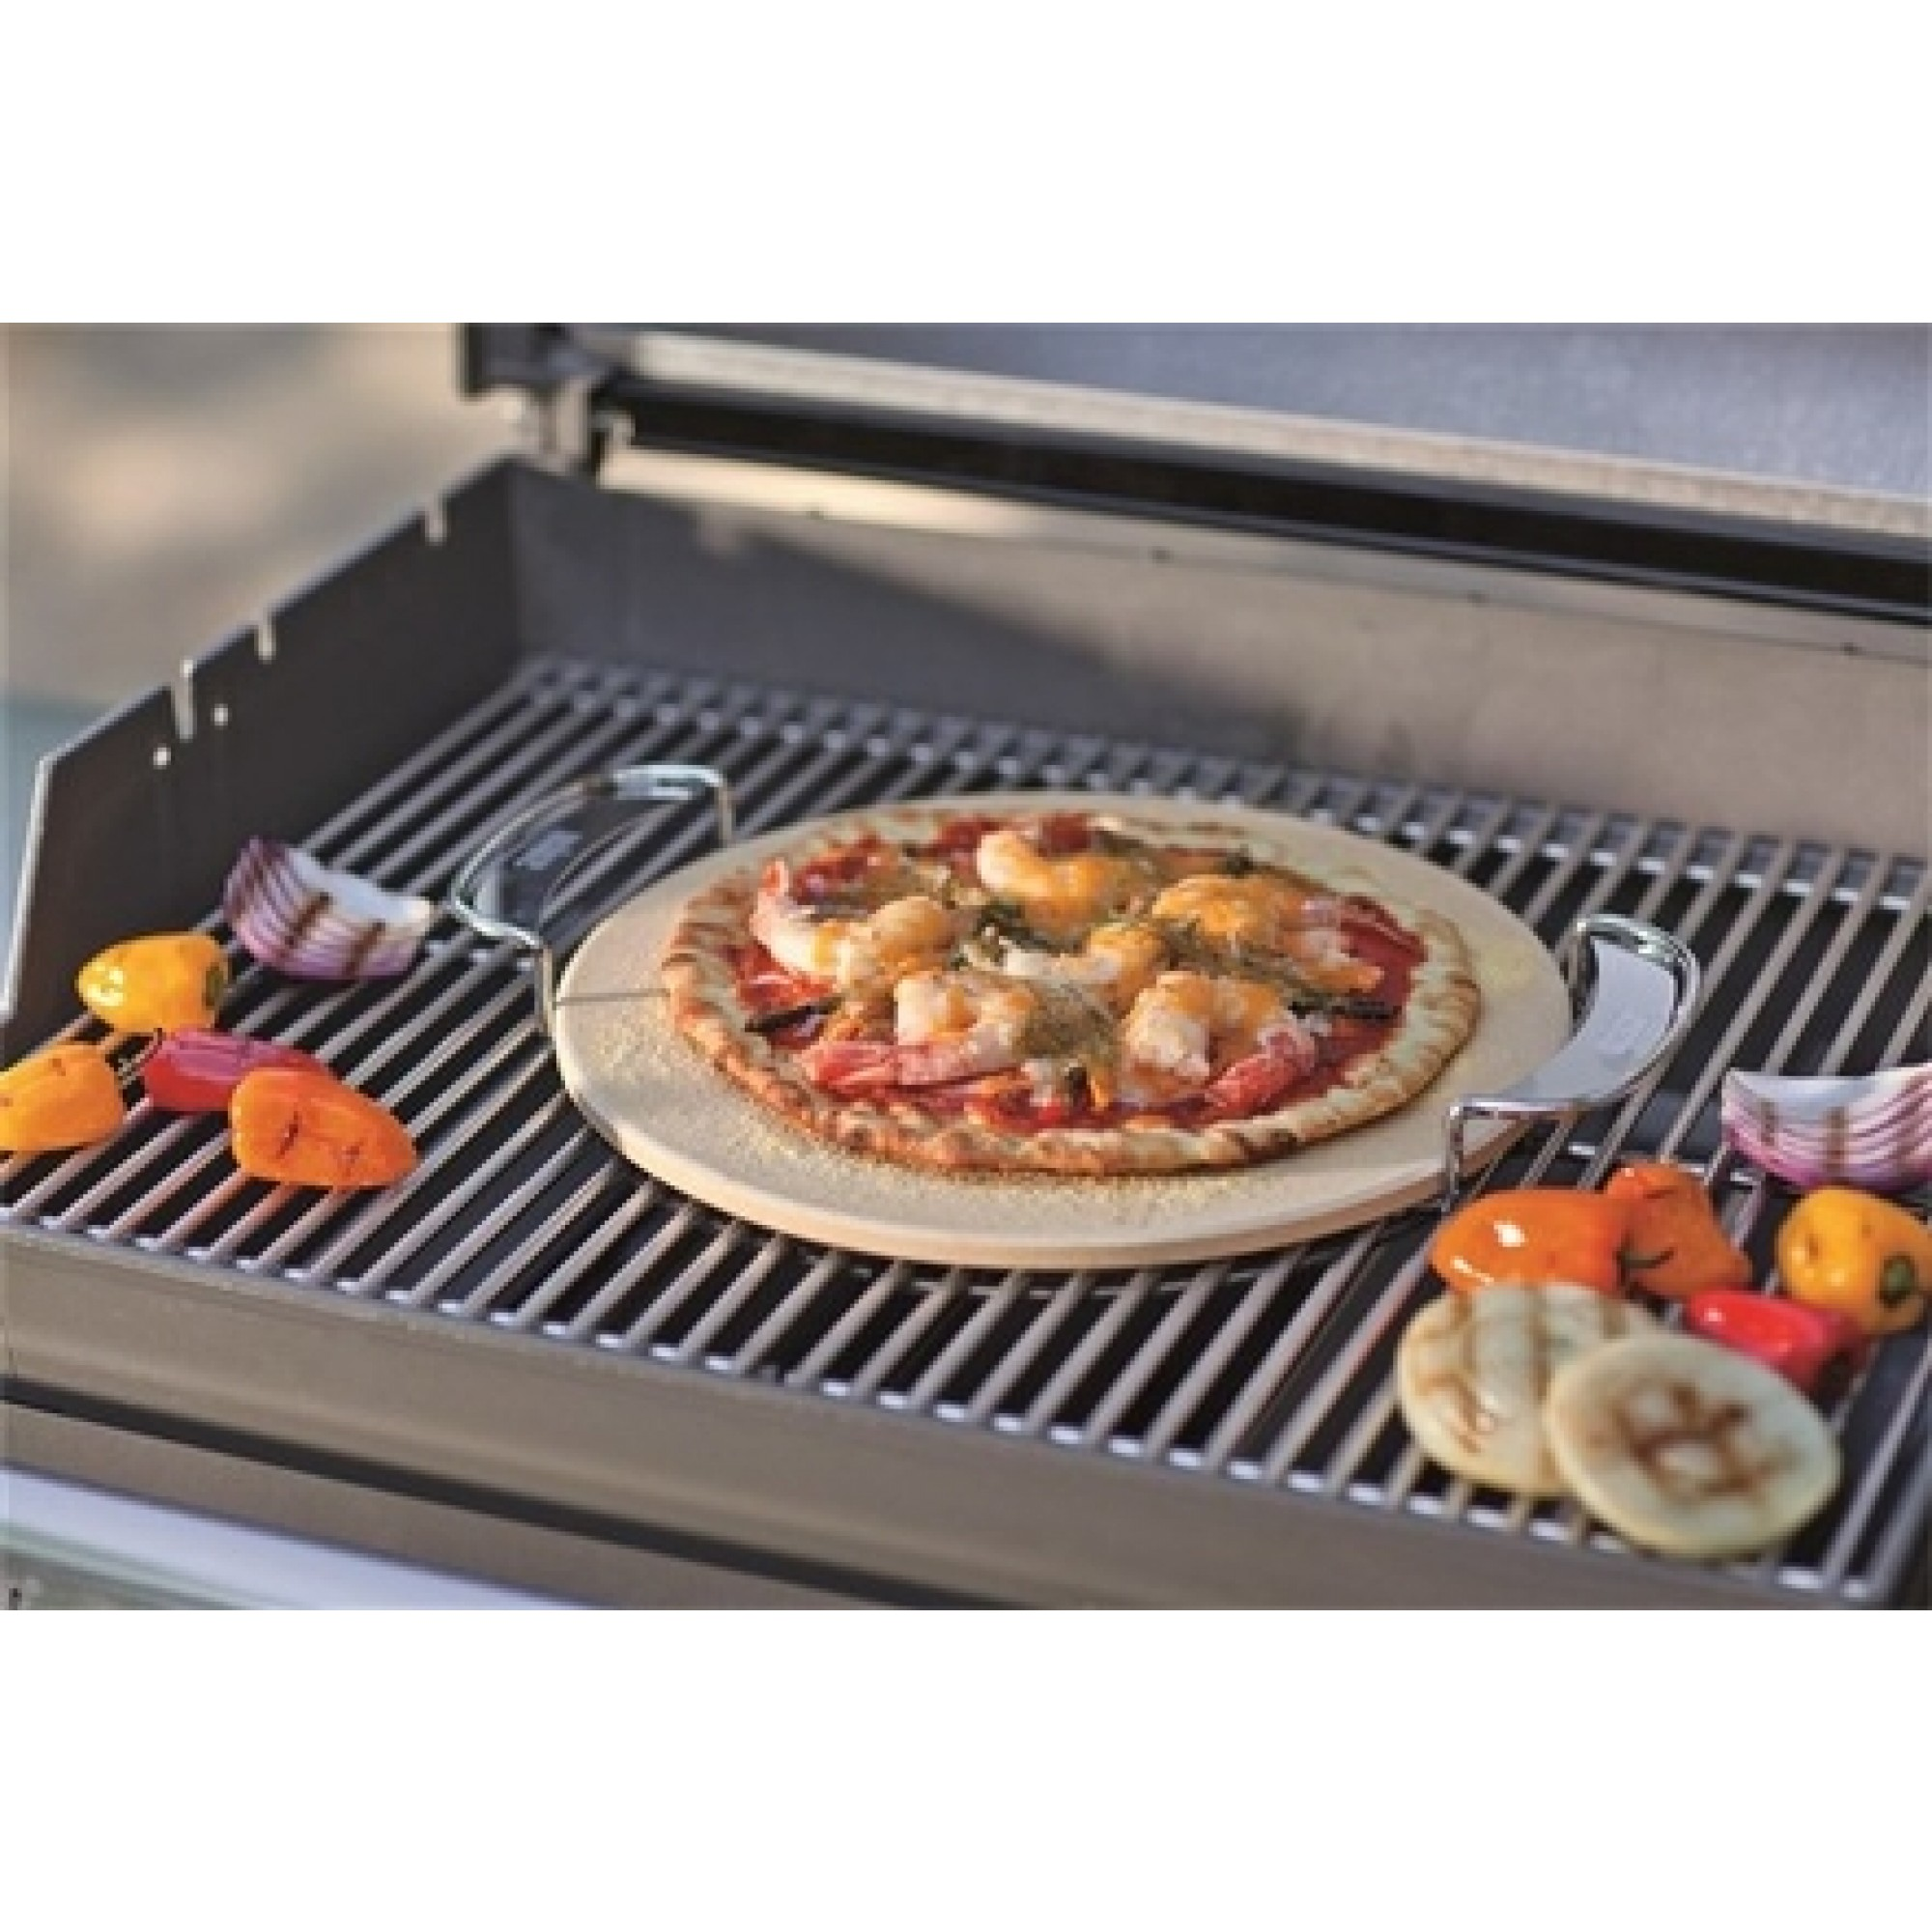 Gourmet Bbq System Pizza Stone Accessories Cooking